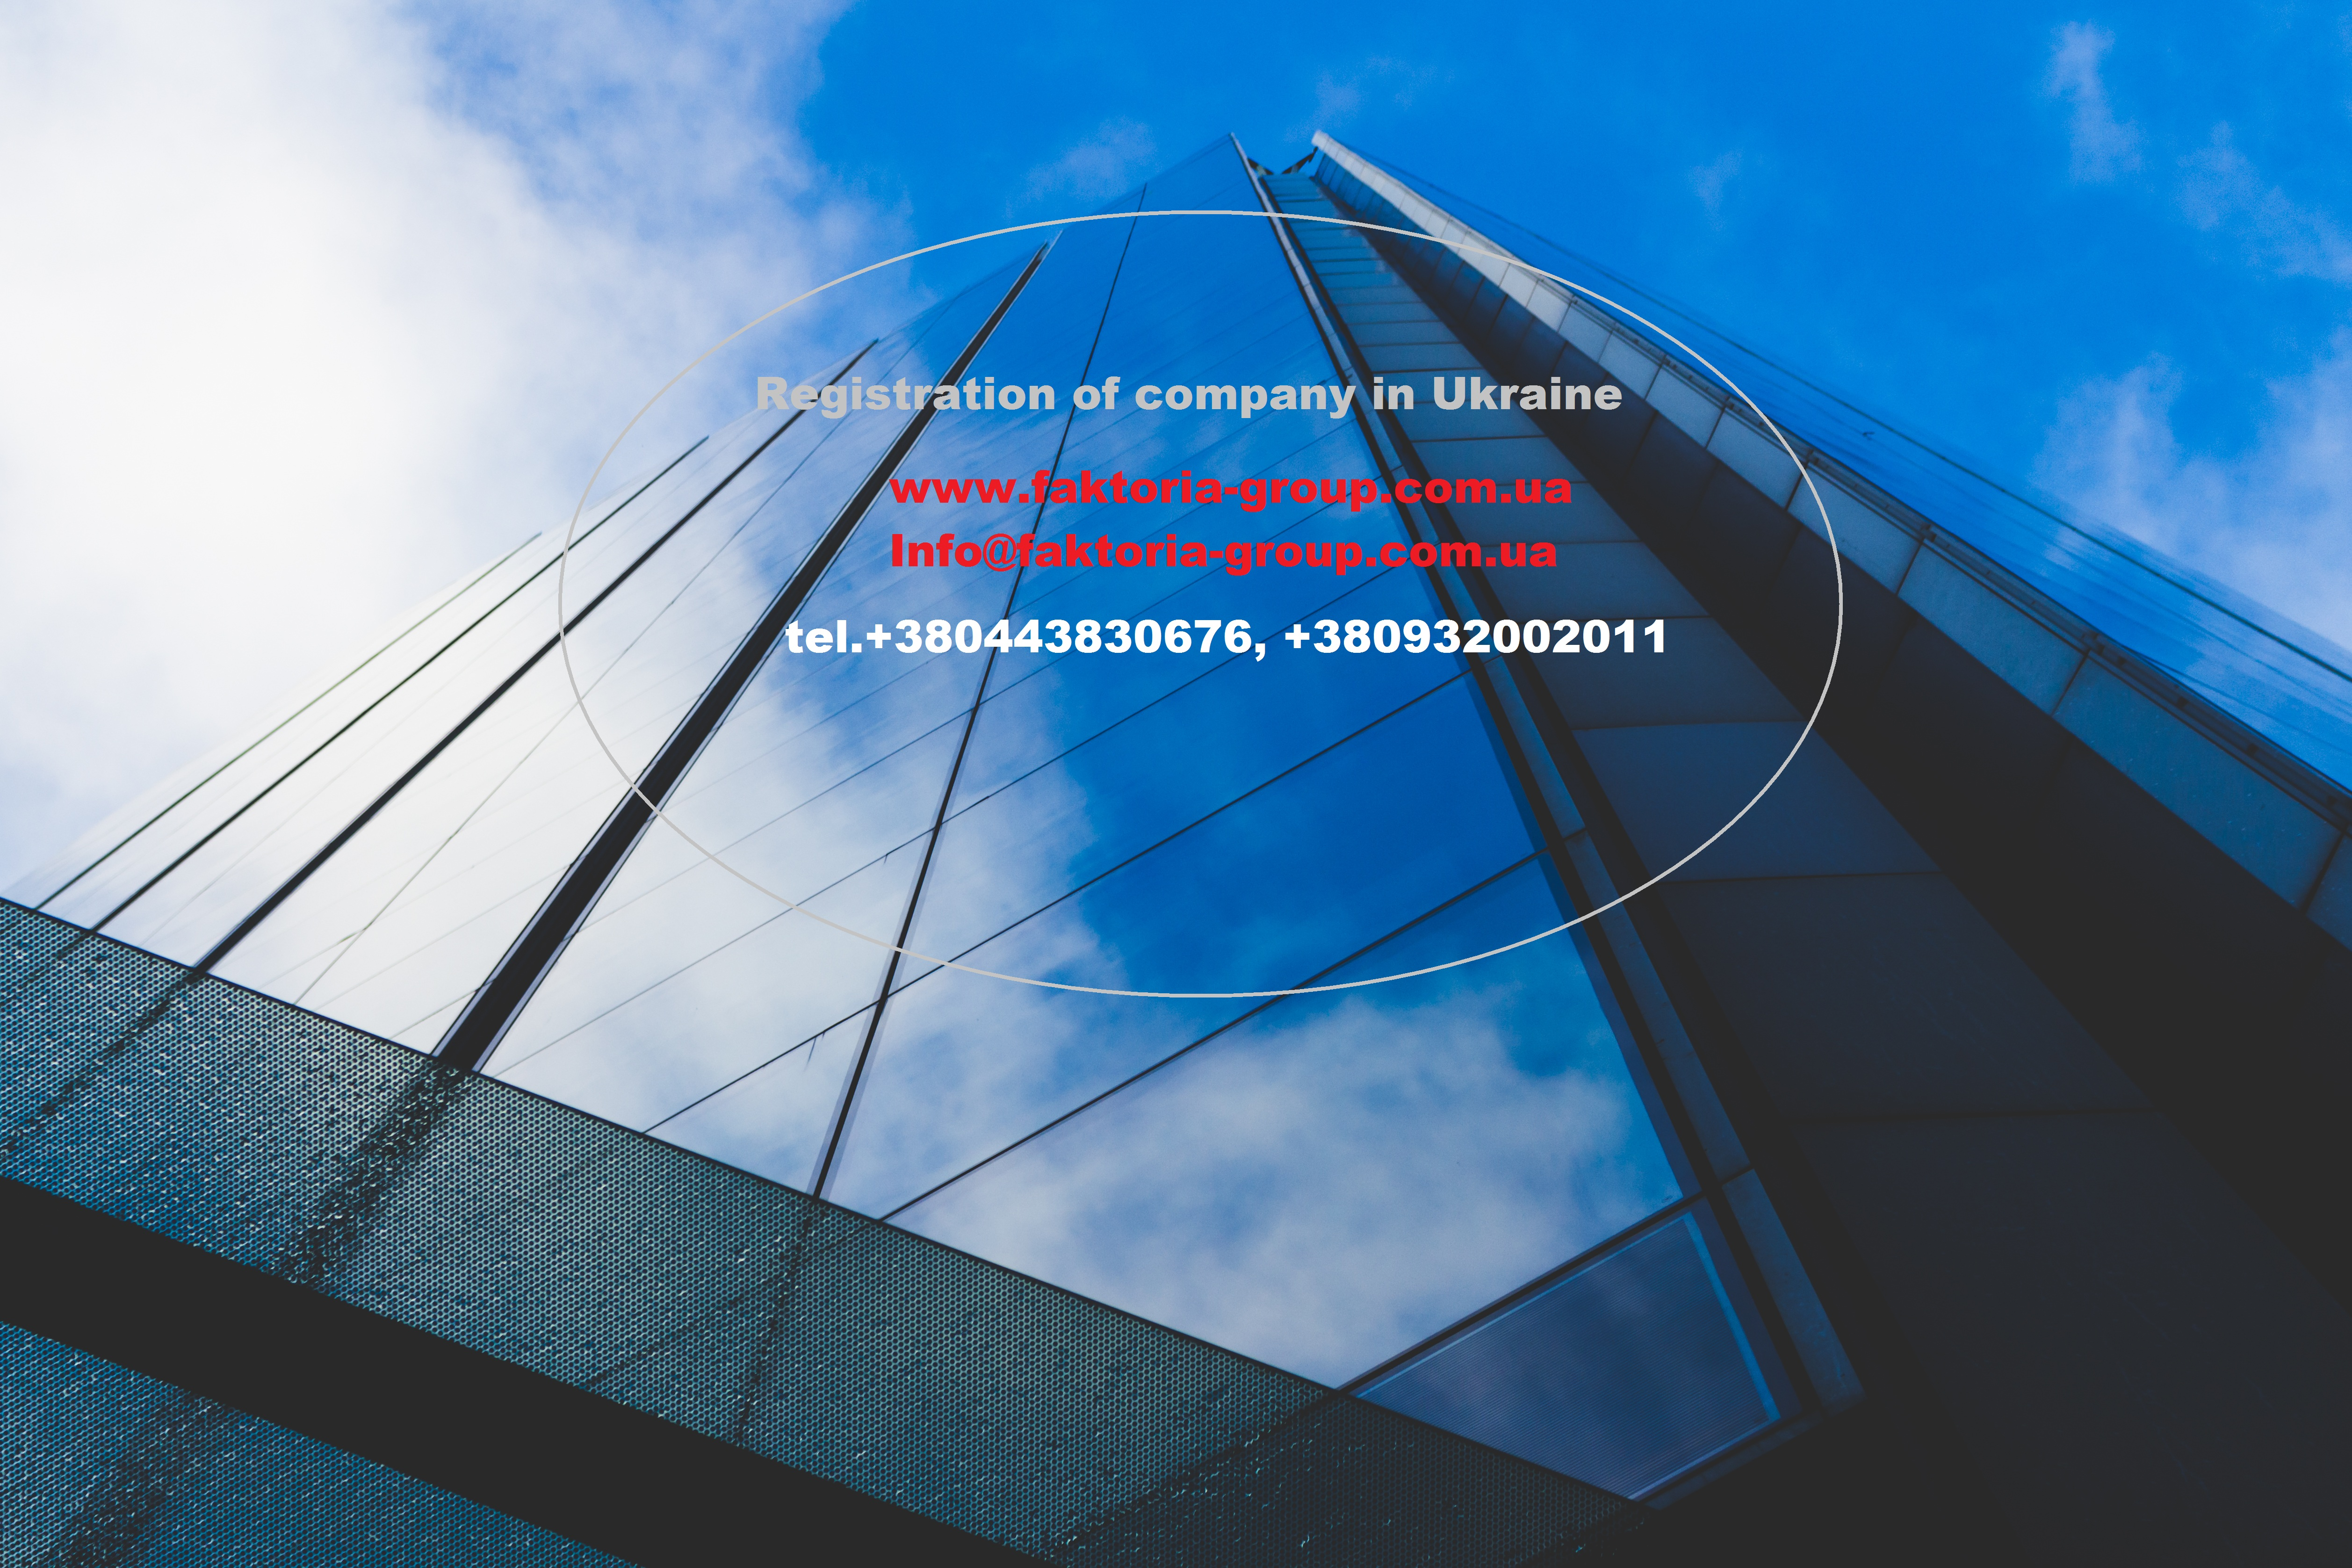 Registration of company, firm, Limited liability company in Ukraine